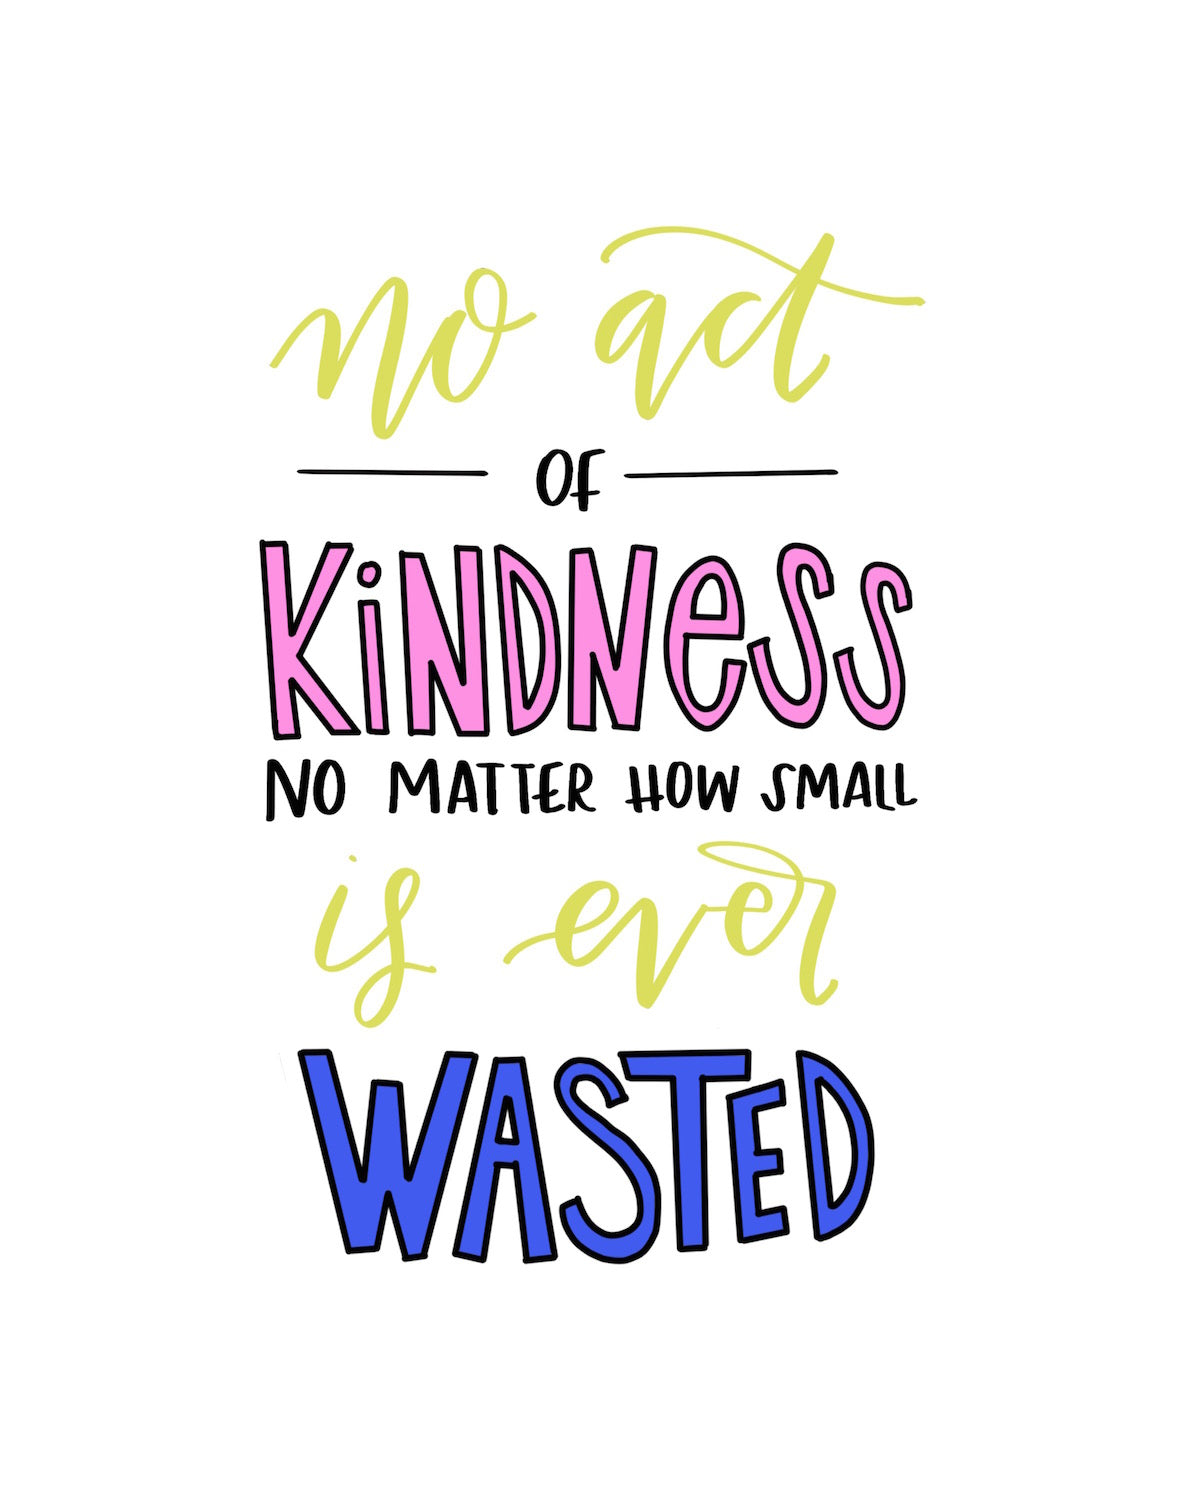 Kindness printables for your home or office | Kindness quotes | Hand lettering + calligraphy | Lime Ricki | Cardall & Co